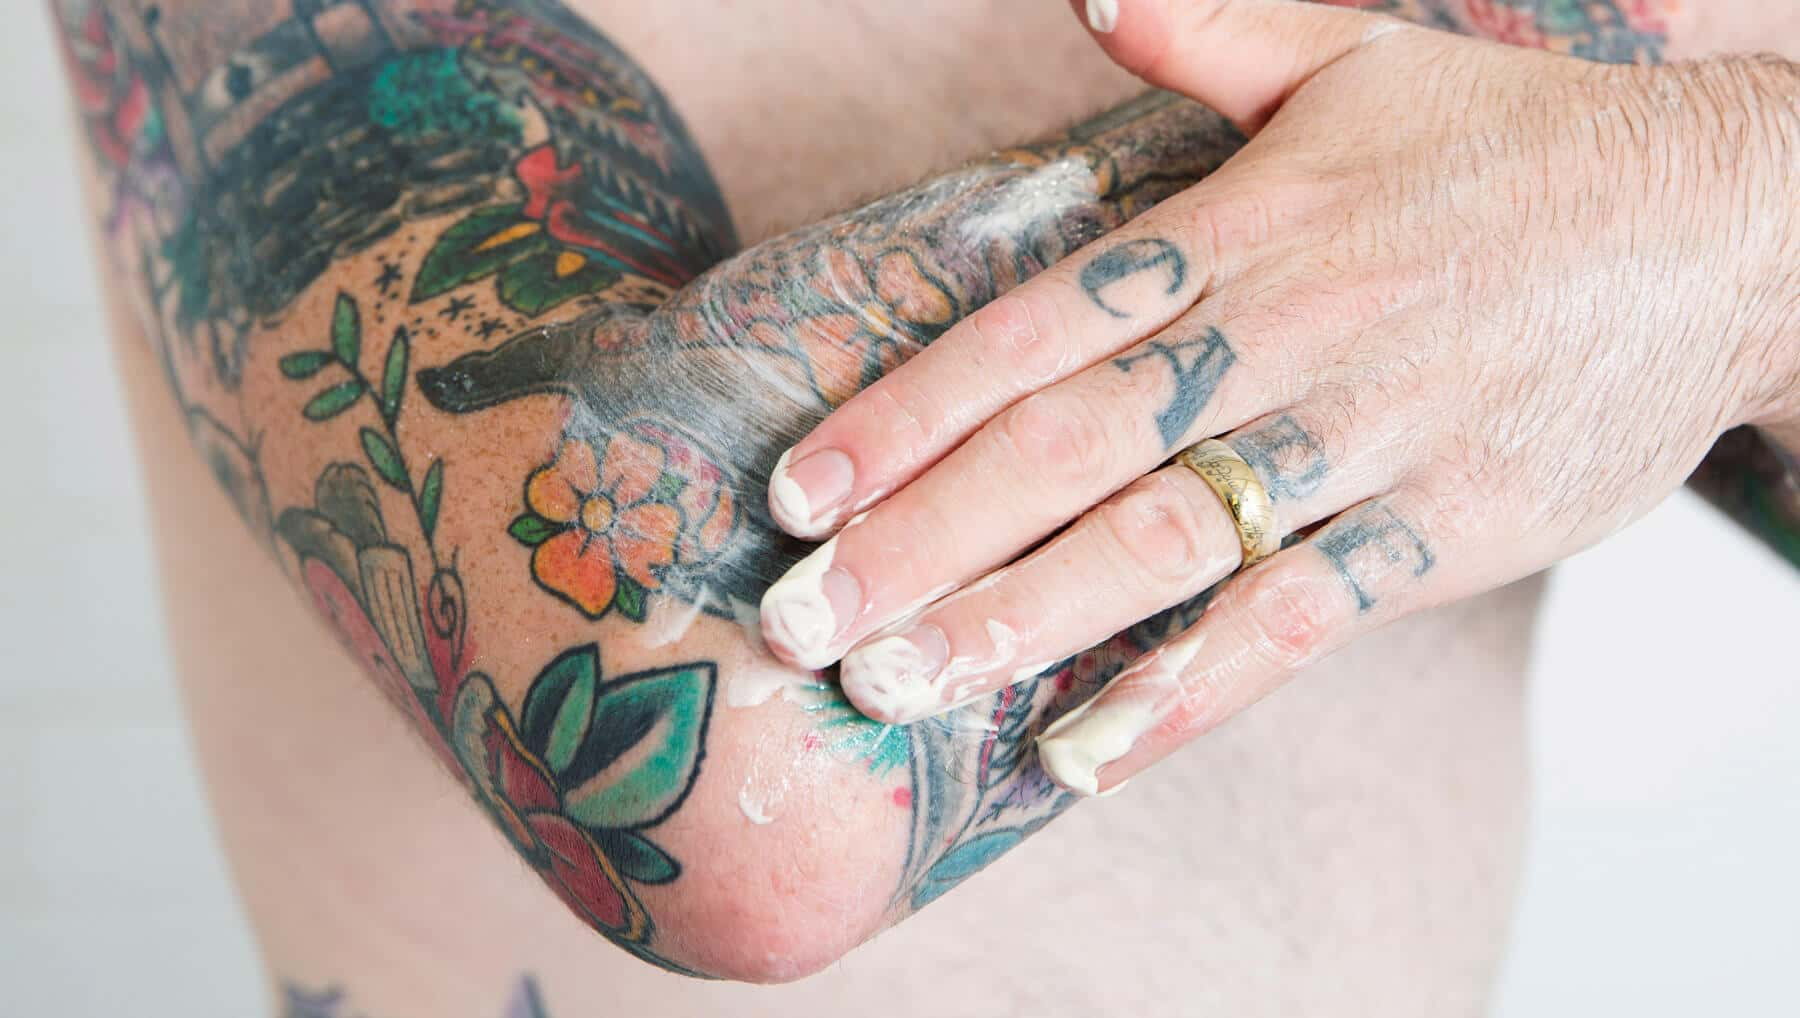 How to Take Care of Your Tattoo?